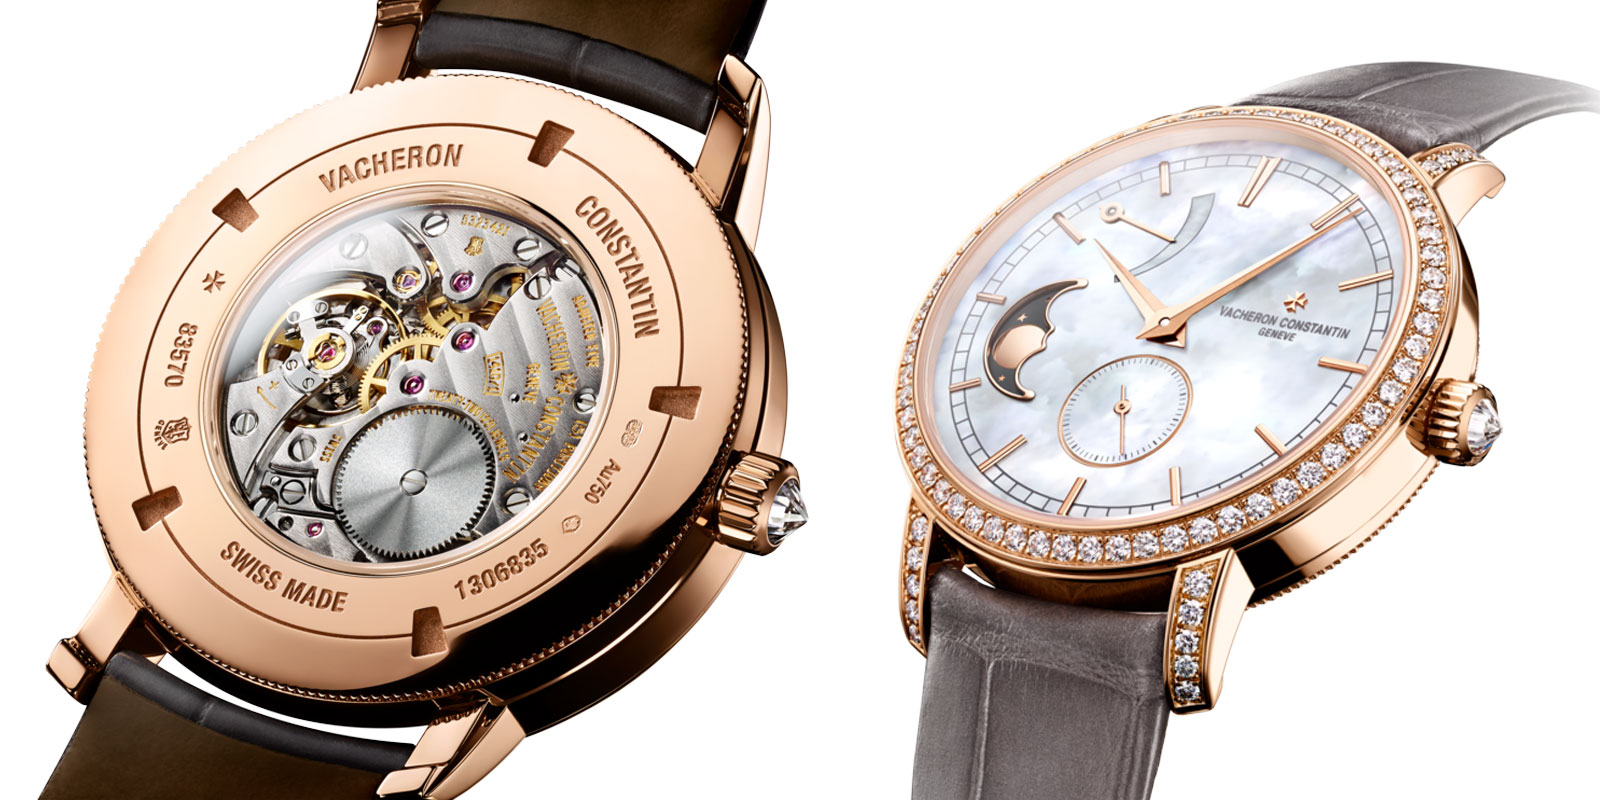 TRADITIONNELLE MOON PHASE 83570/000R-9915 - feature